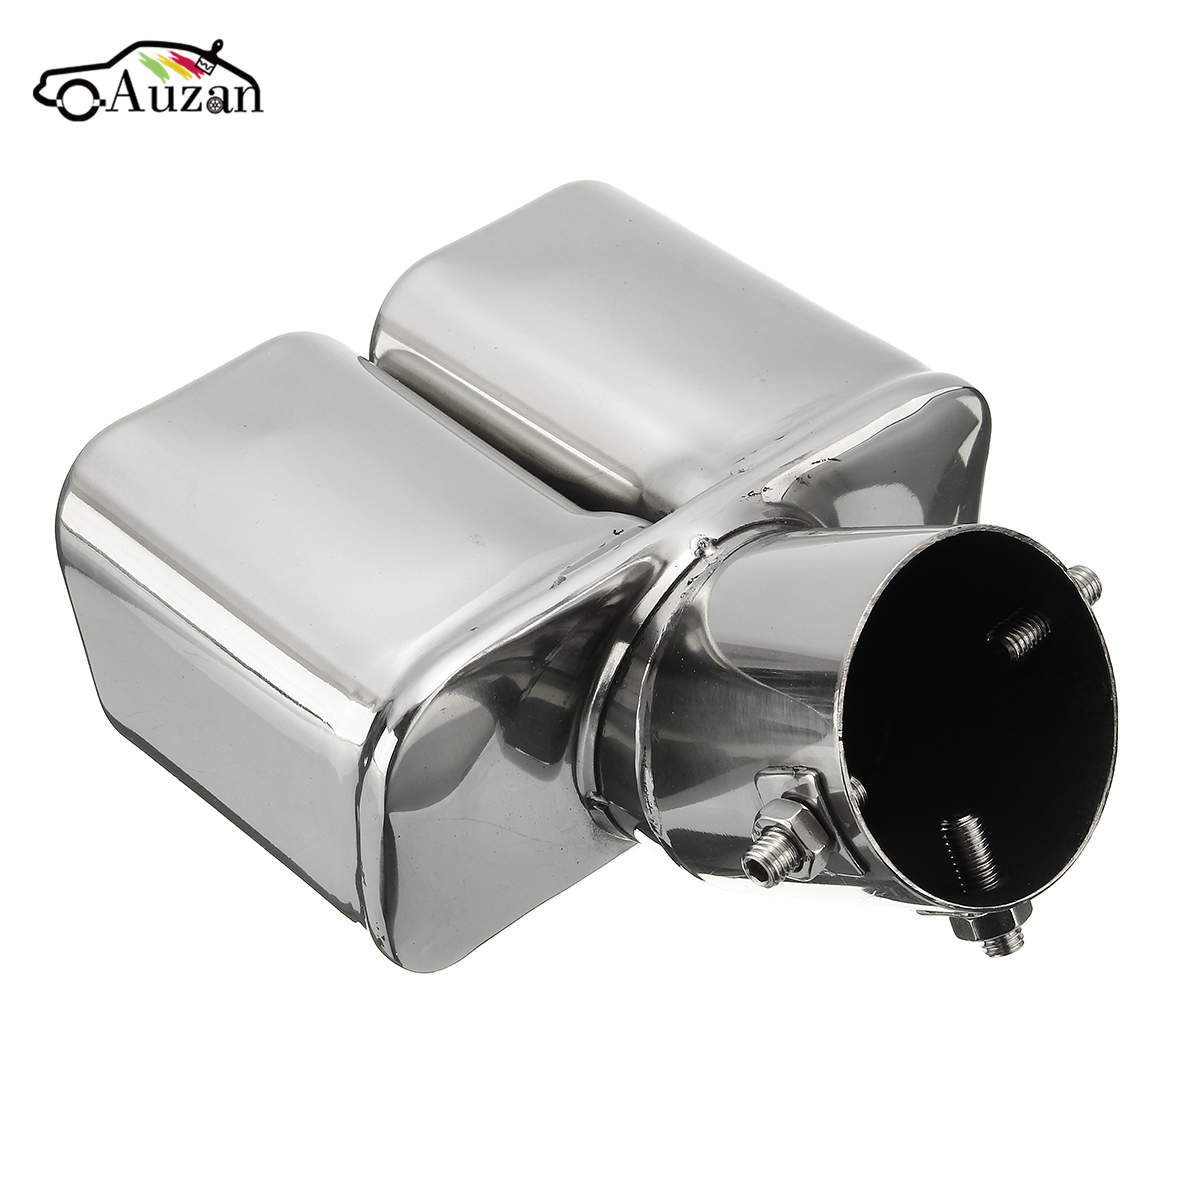 Universal Twin Double Dual Chorme CURVED Exhaust Tailpipe Tail Pipe End Trim Tip Muffler Finish Cover 32-58mm 304Stainless Steel